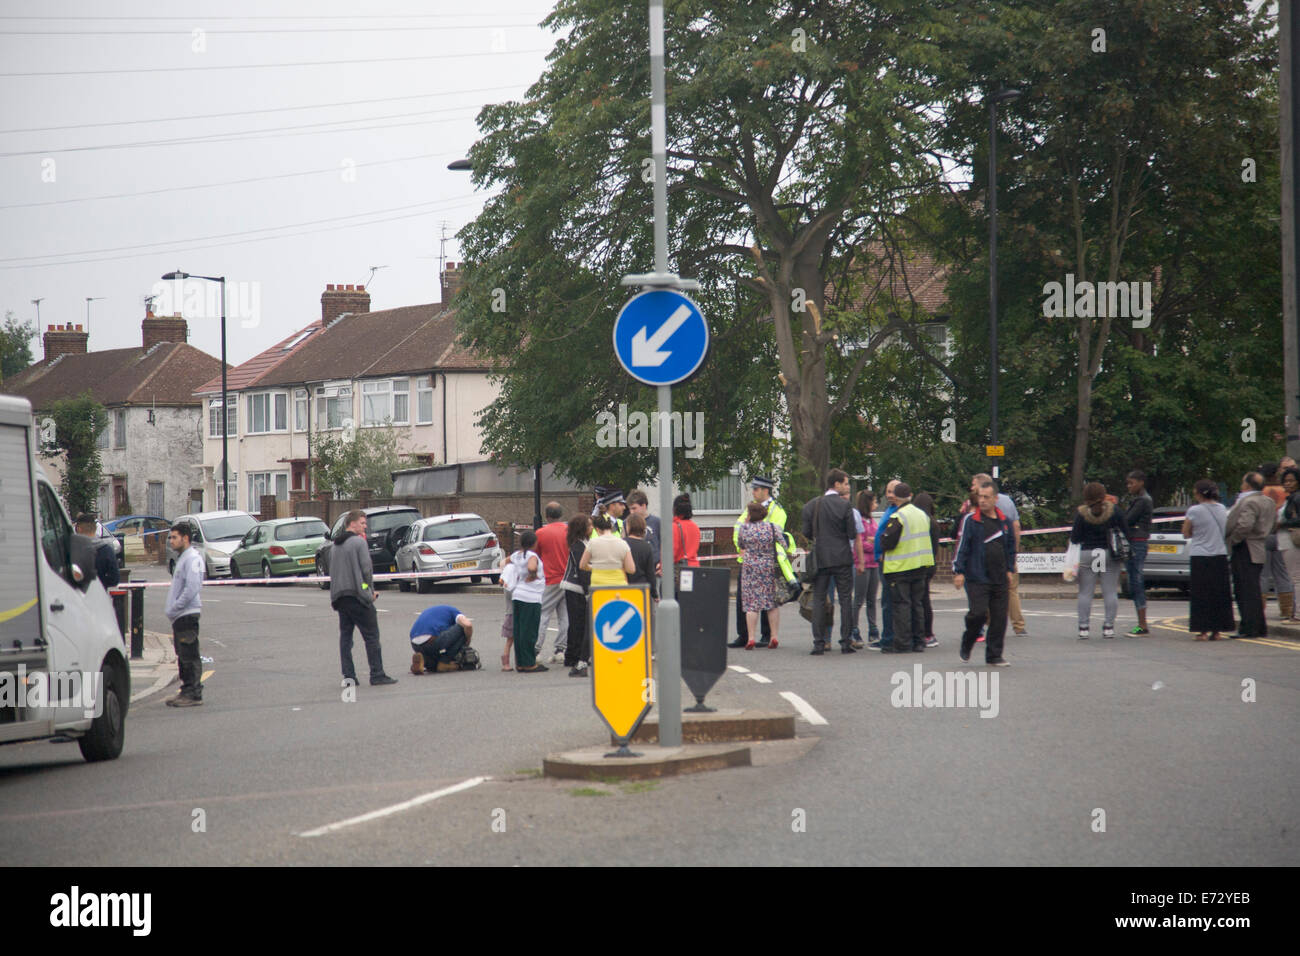 Edmonton London,UK. 4th September  2014. Resident onlookers watch behind police tapes near the crime scene after - Stock Image